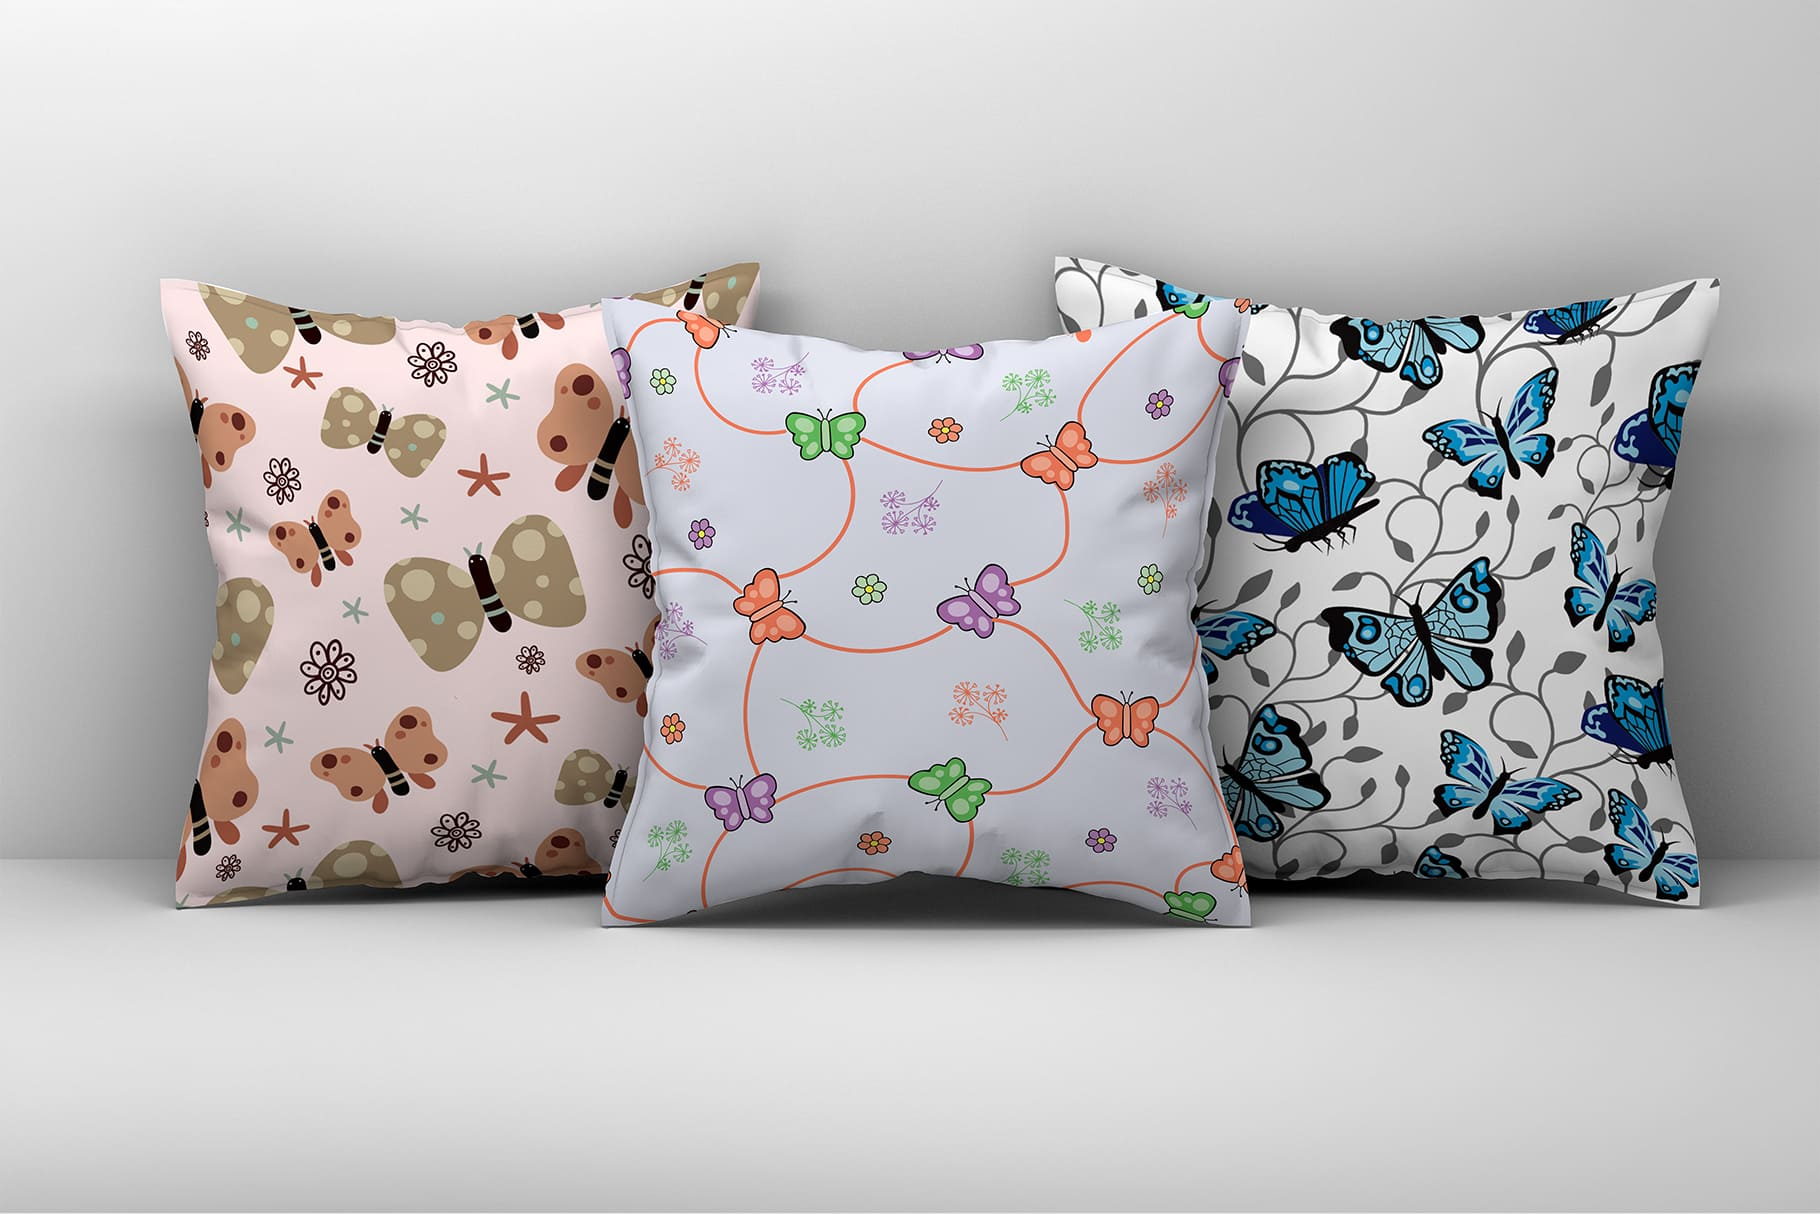 Decorative pillows in pastel colors with butterflies.